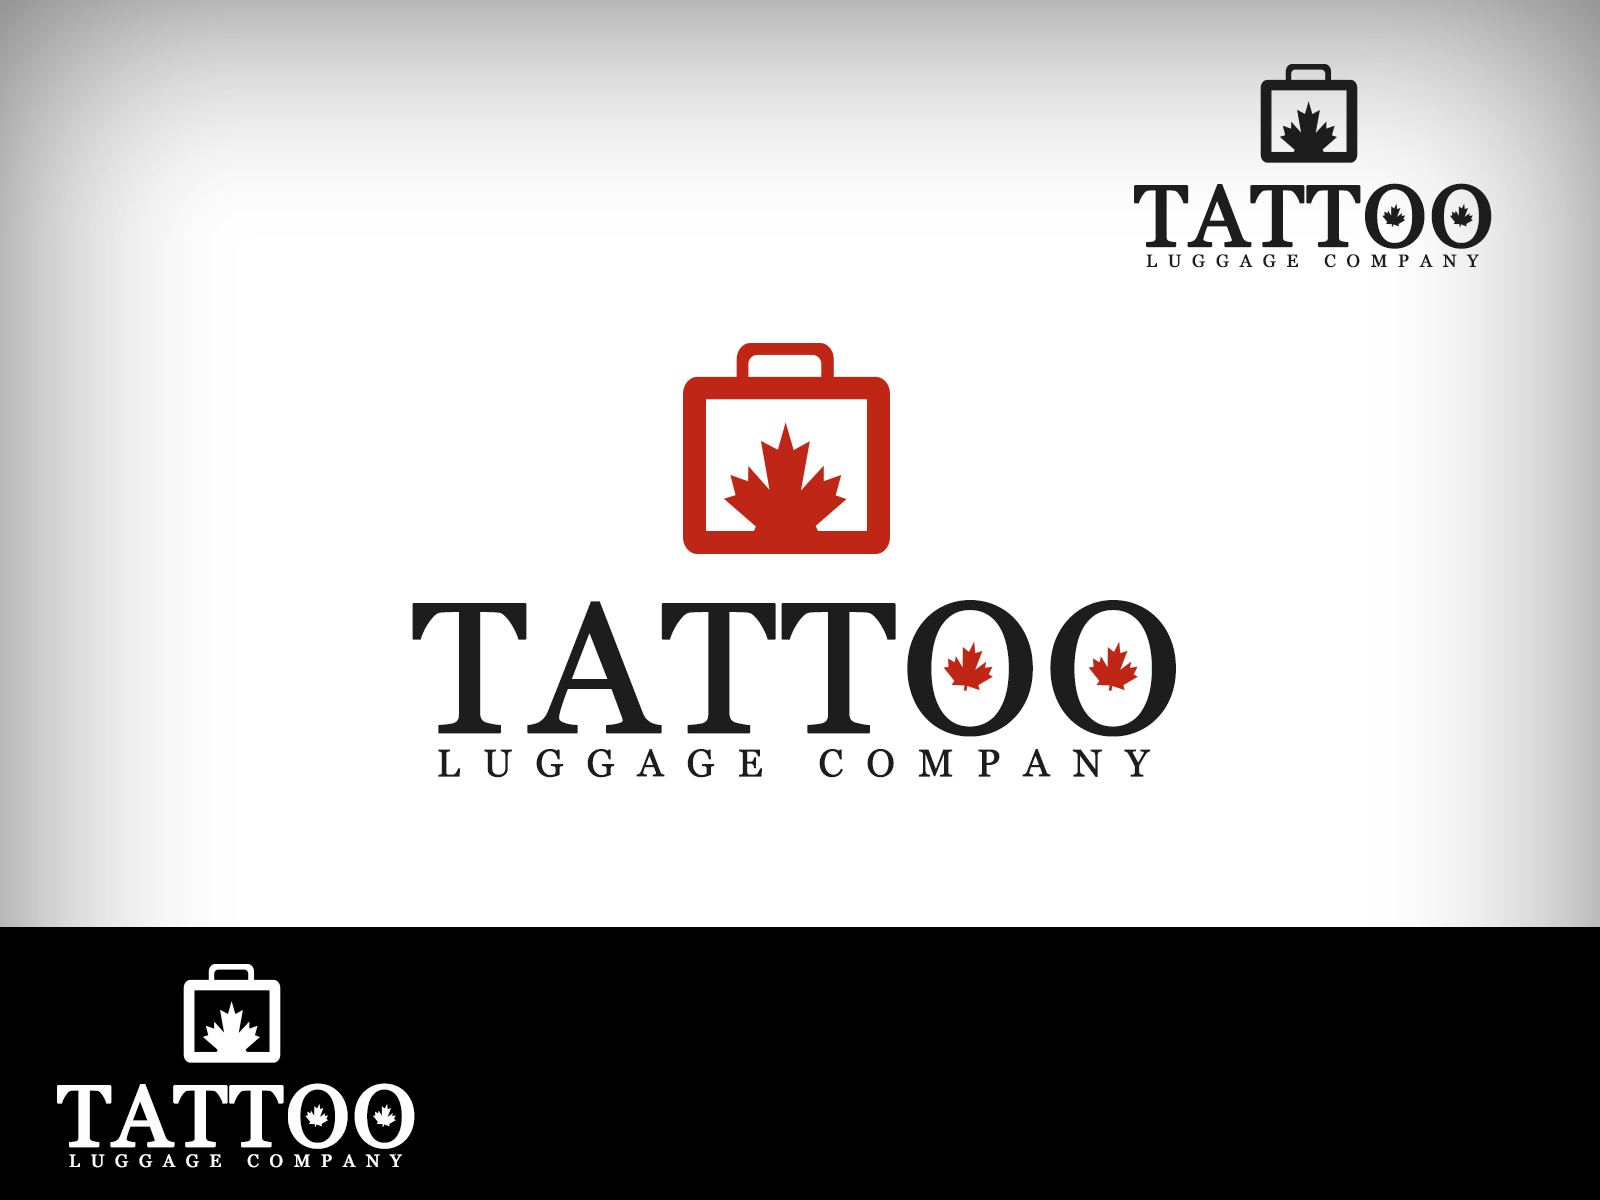 Logo Design by Virgilio Pineda III - Entry No. 182 in the Logo Design Contest Artistic Logo Design for Tattoo Luggage Company.